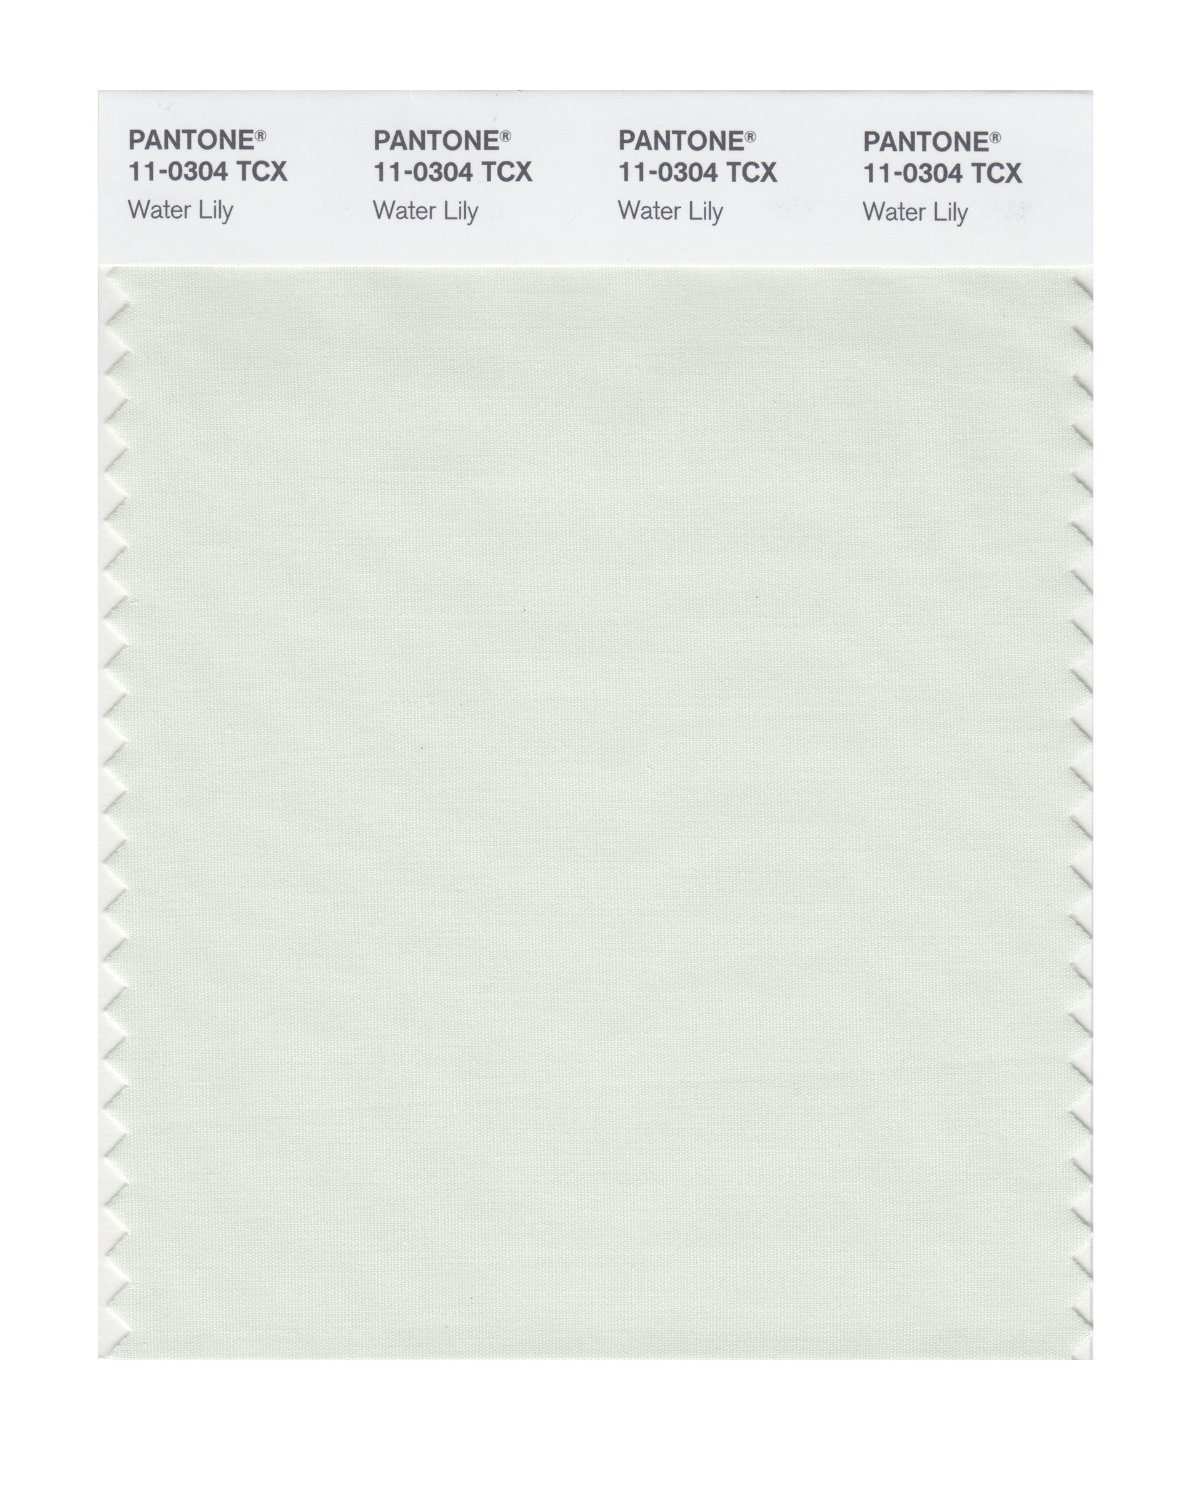 Pantone Smart Swatch 11-0304 Water Lily